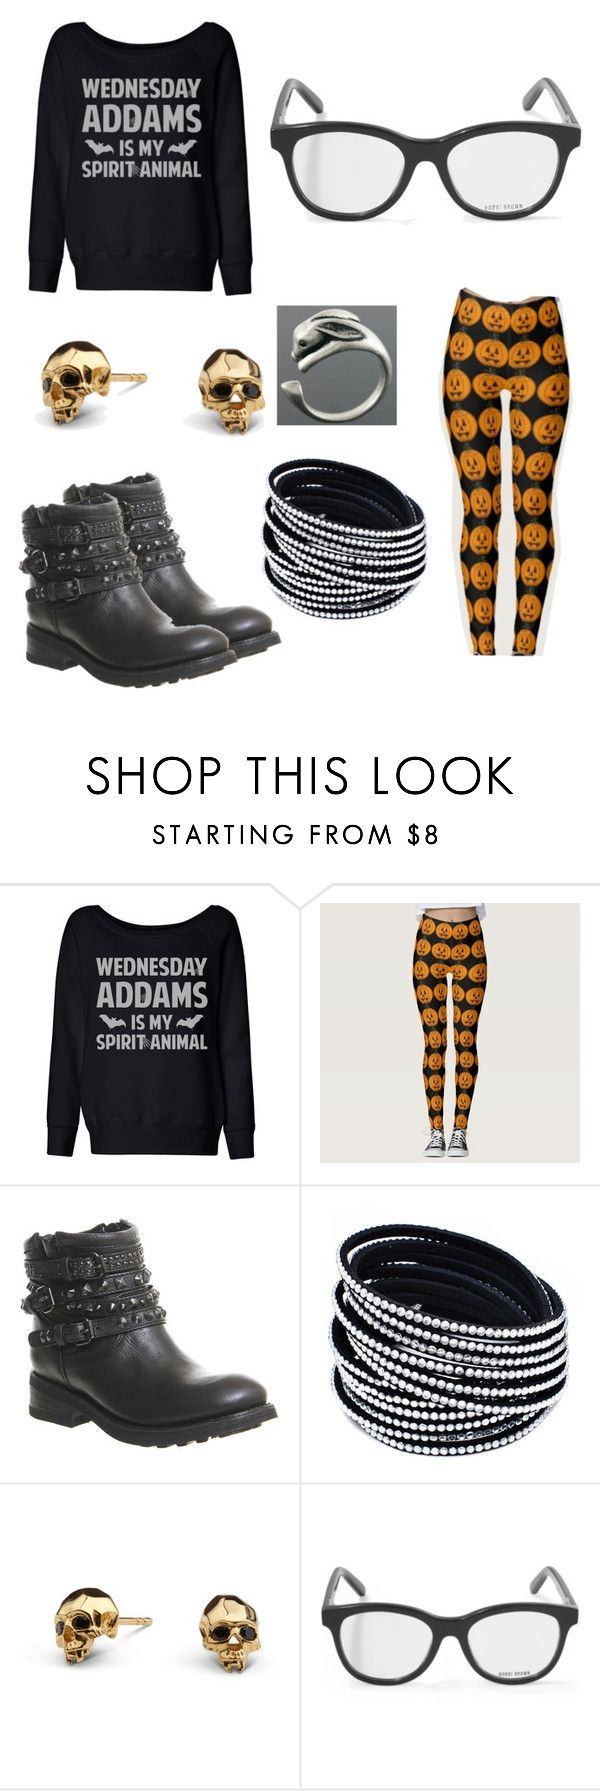 148 by shansunderwater on Polyvore featuring Ash, Kasun and Bobbi Brown Cosmetics